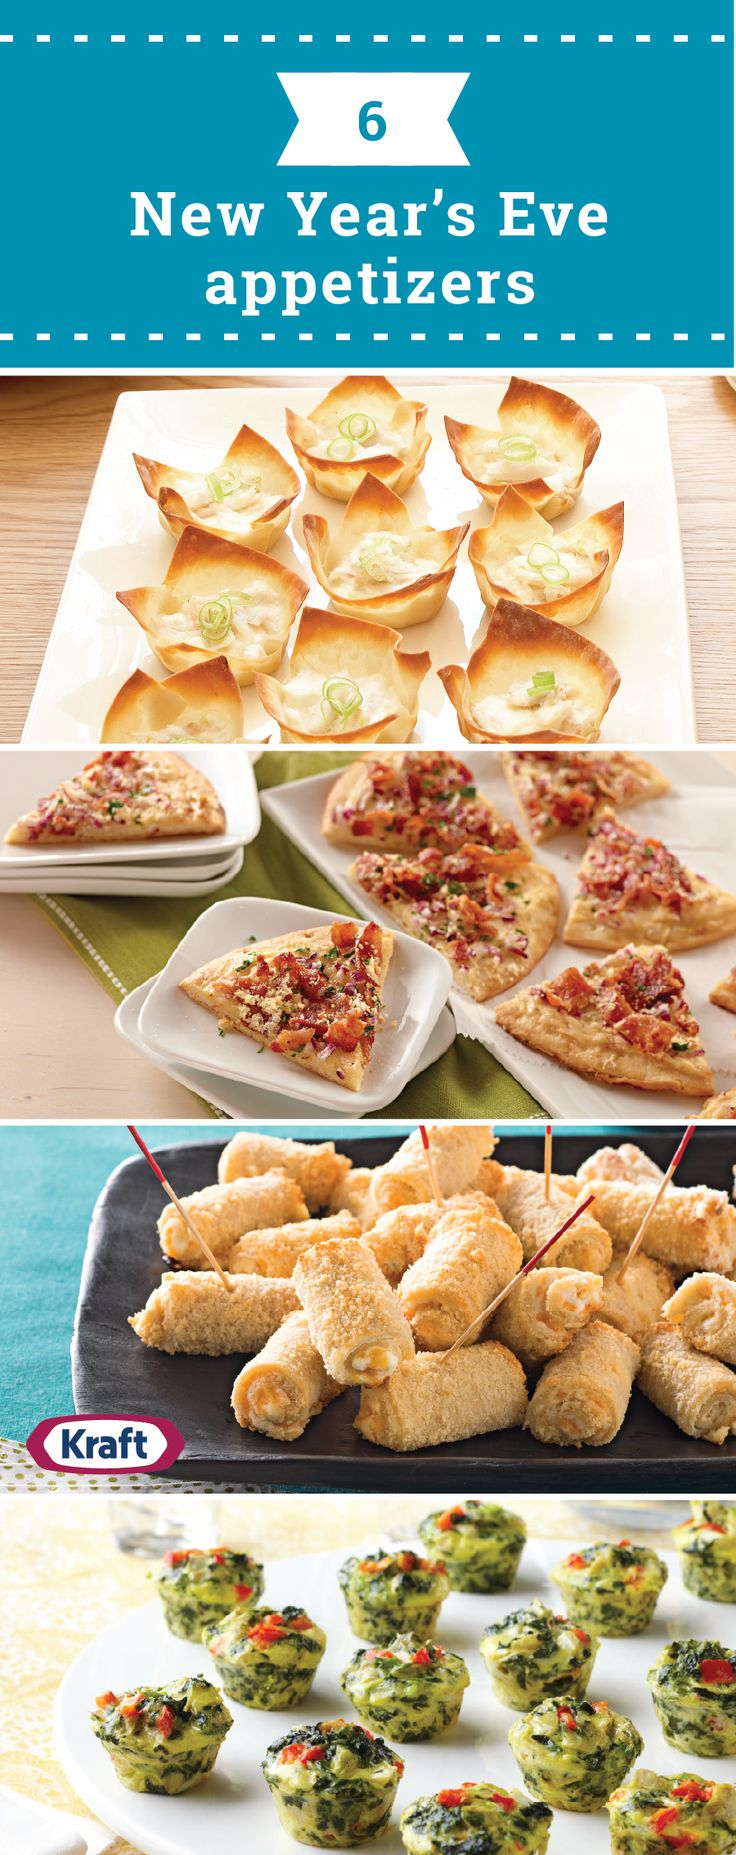 6 New Year's Eve Appetizers – Celebrate the new year with friends, family and these tasty appetizer ideas! With recipes like Cheddar-Jalapeno Bites, Baked Crab Rangoons, and everything in between, you're sure to find the perfect savory dish to ring in the new year.